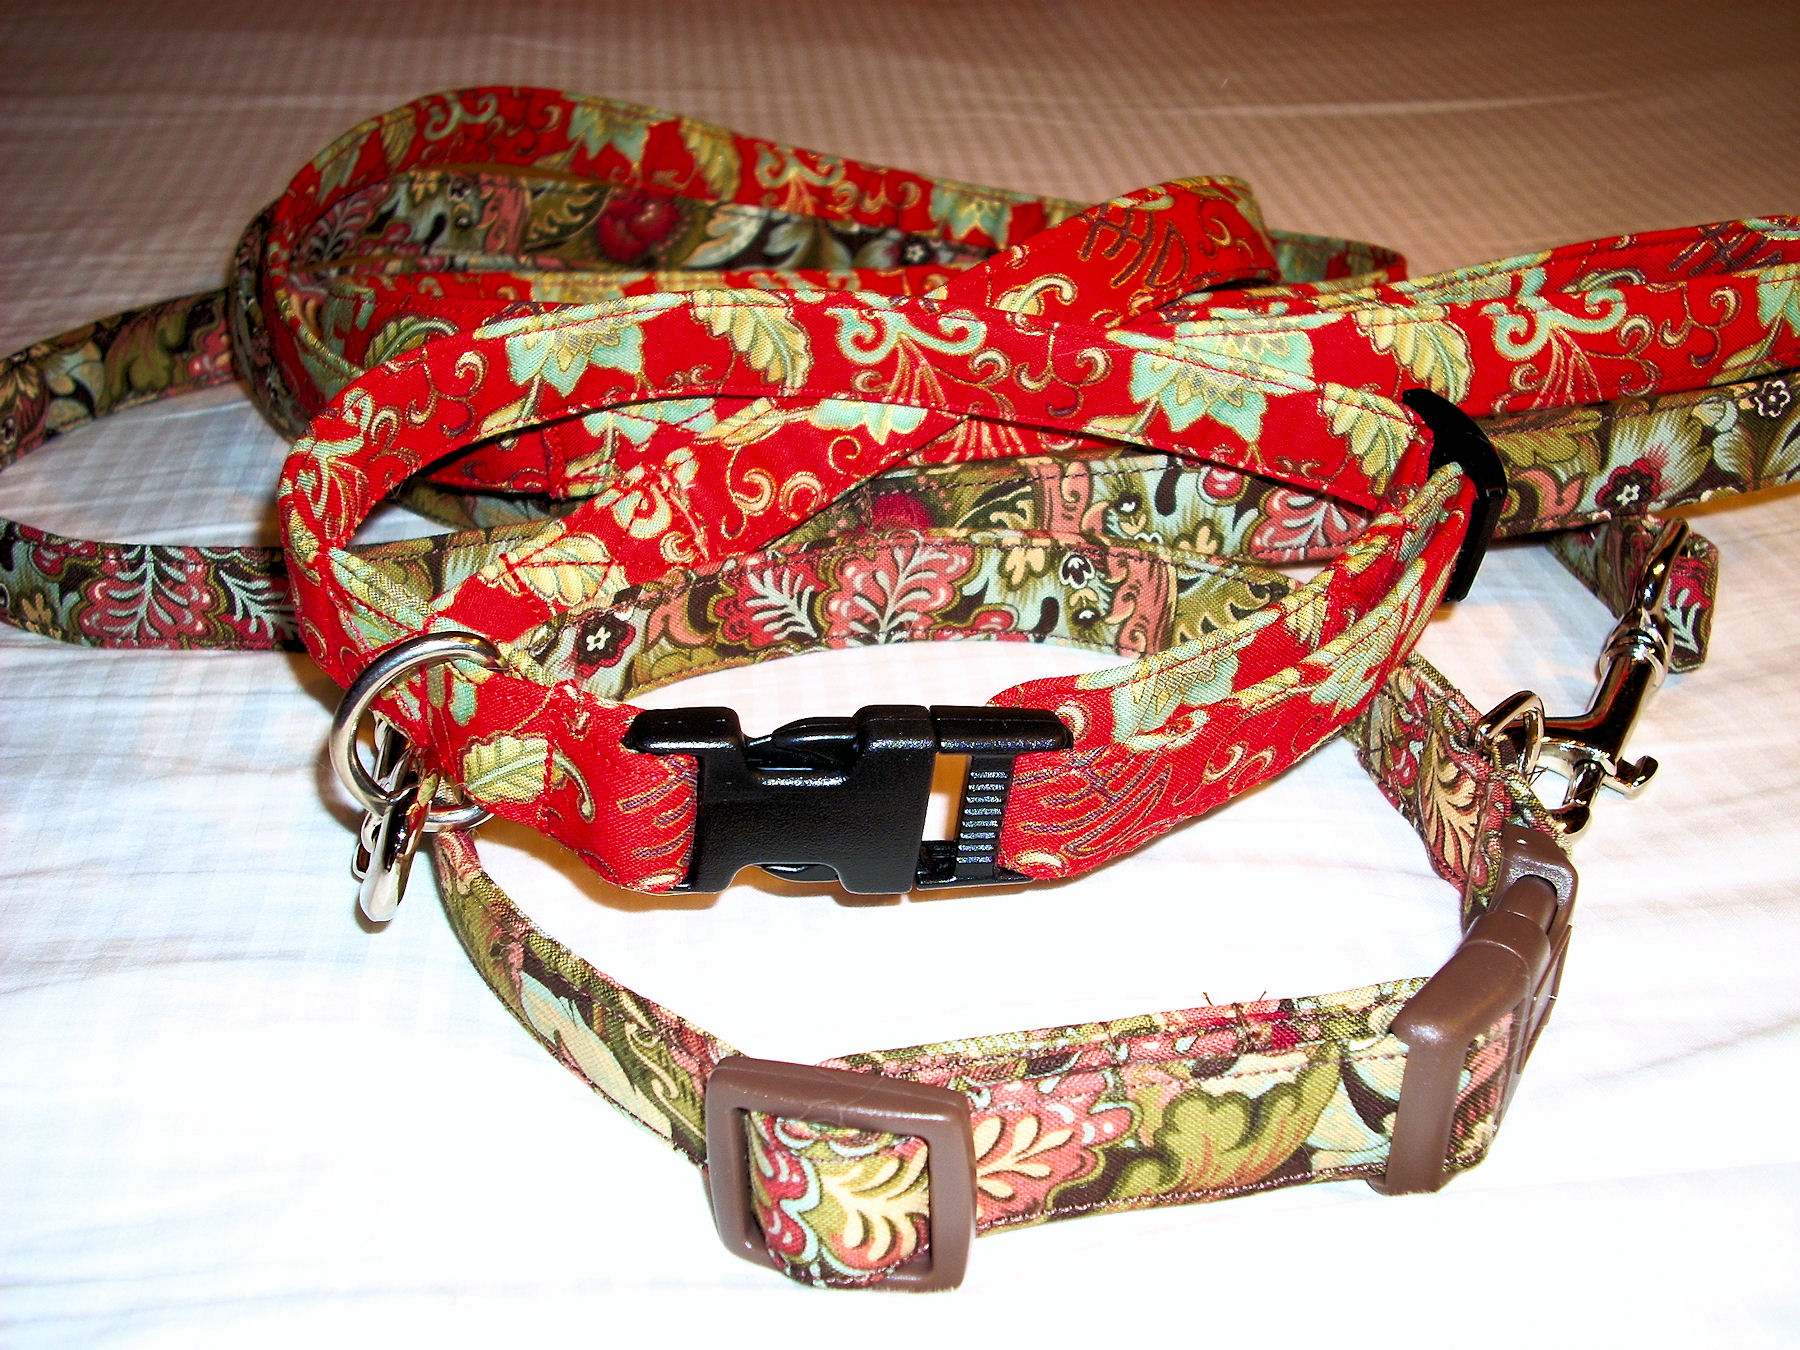 2012 Collars & Leashes 1